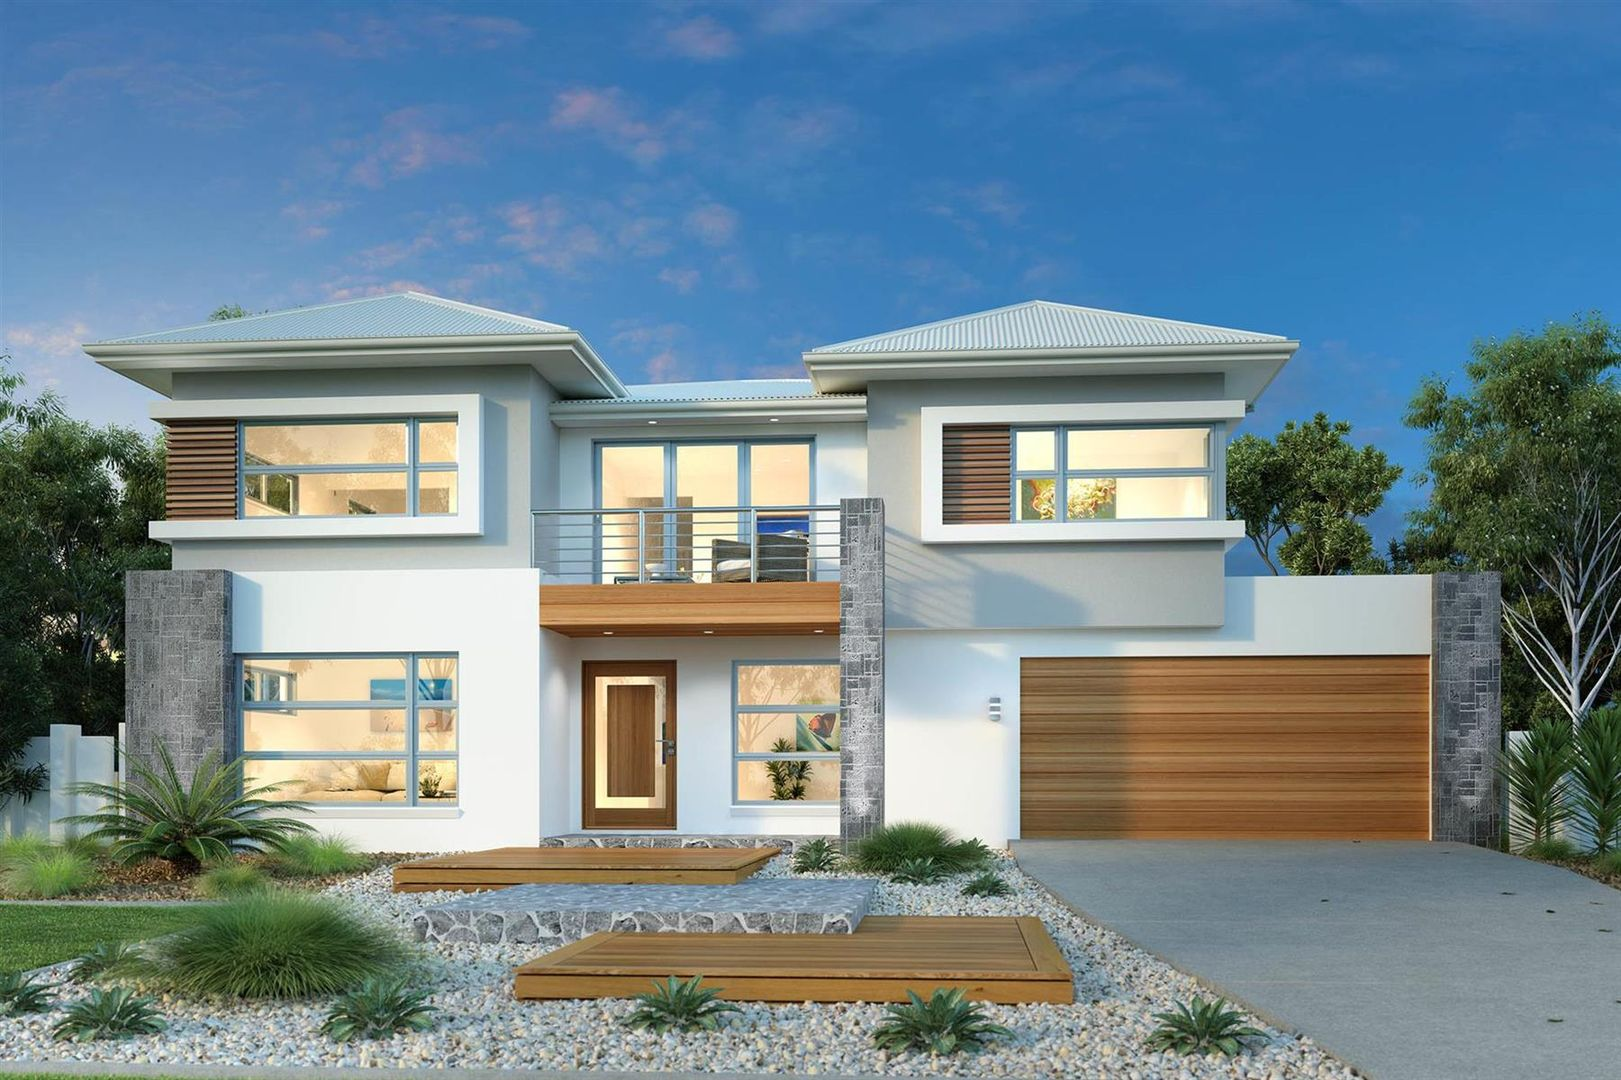 Lot 5 Please call Sales Consultant, Kenmore QLD 4069, Image 2